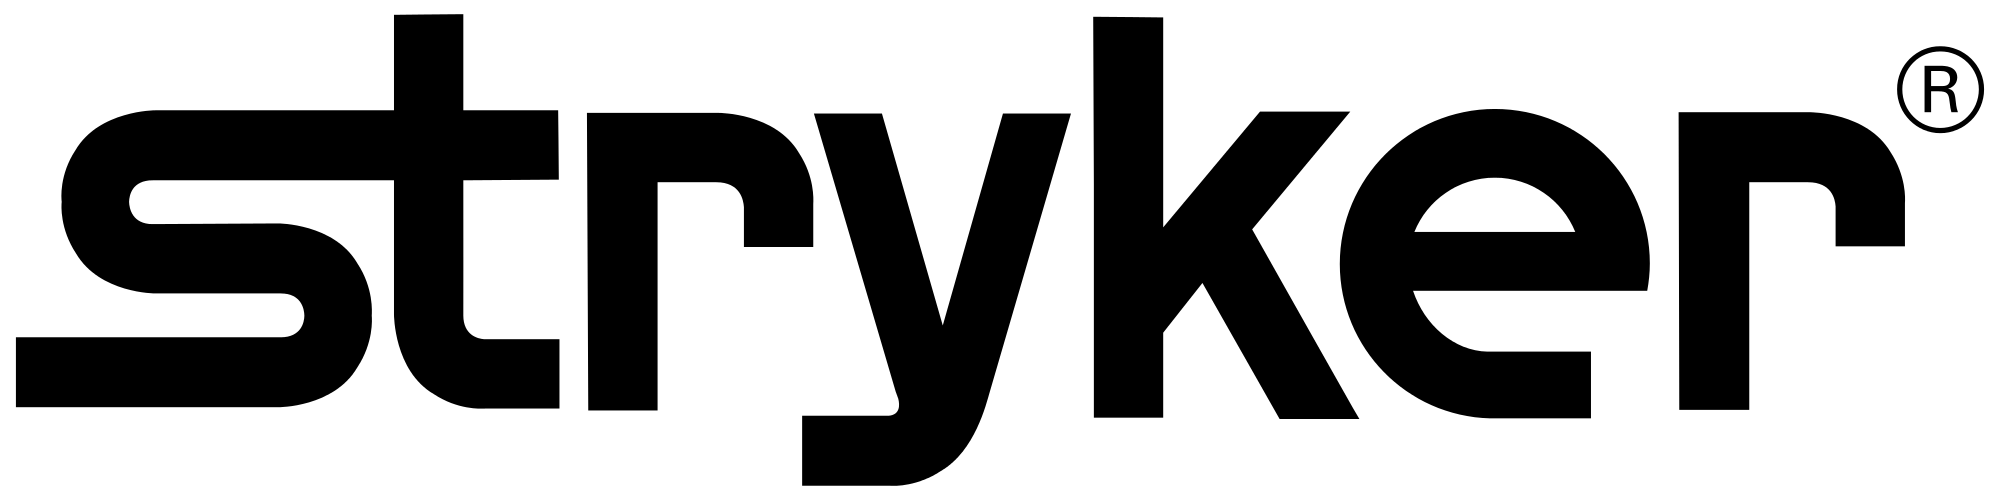 Stryker_Corporation_logo.png